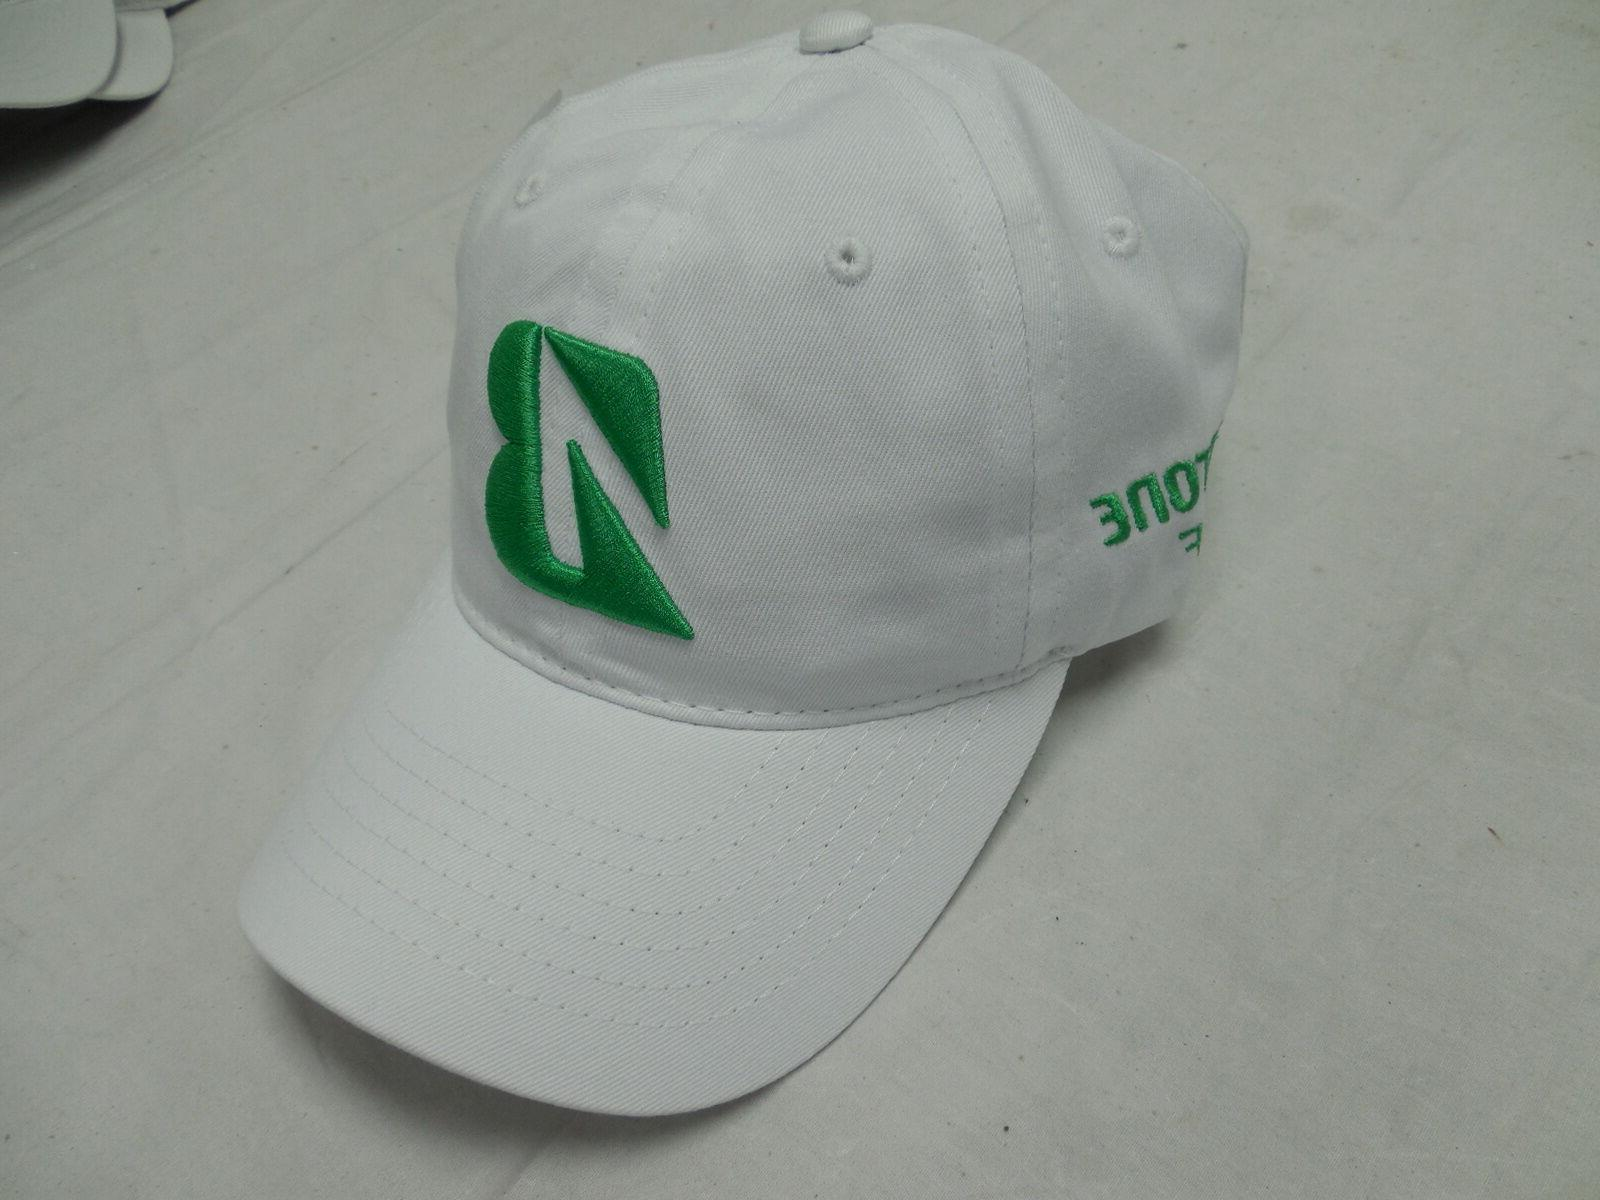 new golf snedeker collection hat kelly green